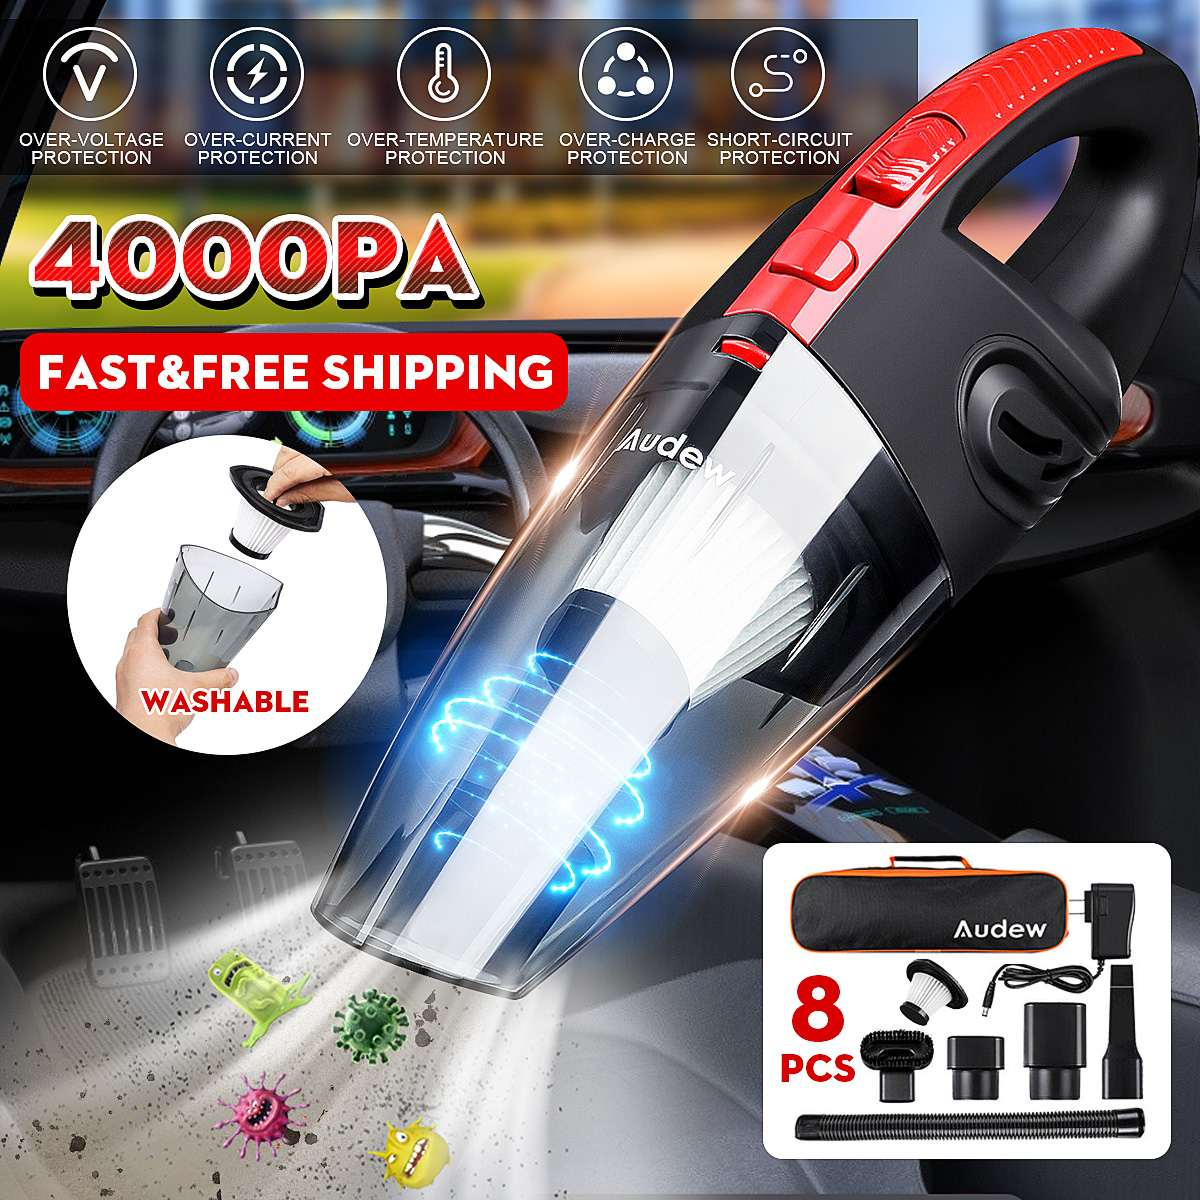 Handheld Home Vacuum Cleaner HEPA Filter Mini Portable Rechargeable Cordless Wet Dry Use 2200mAh AUDEW 120W 4000pa